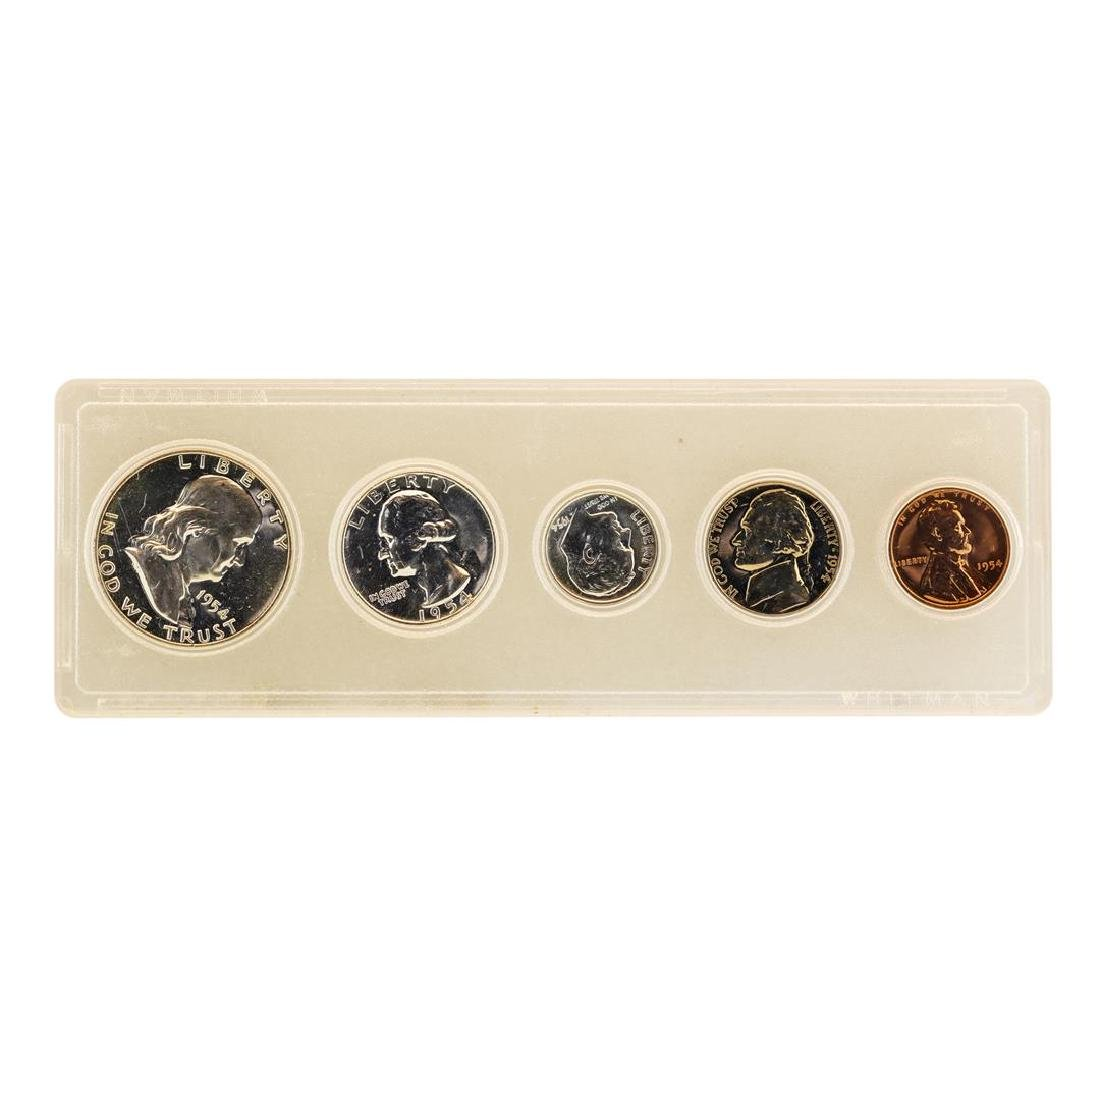 1954 (5) Coin Proof Set